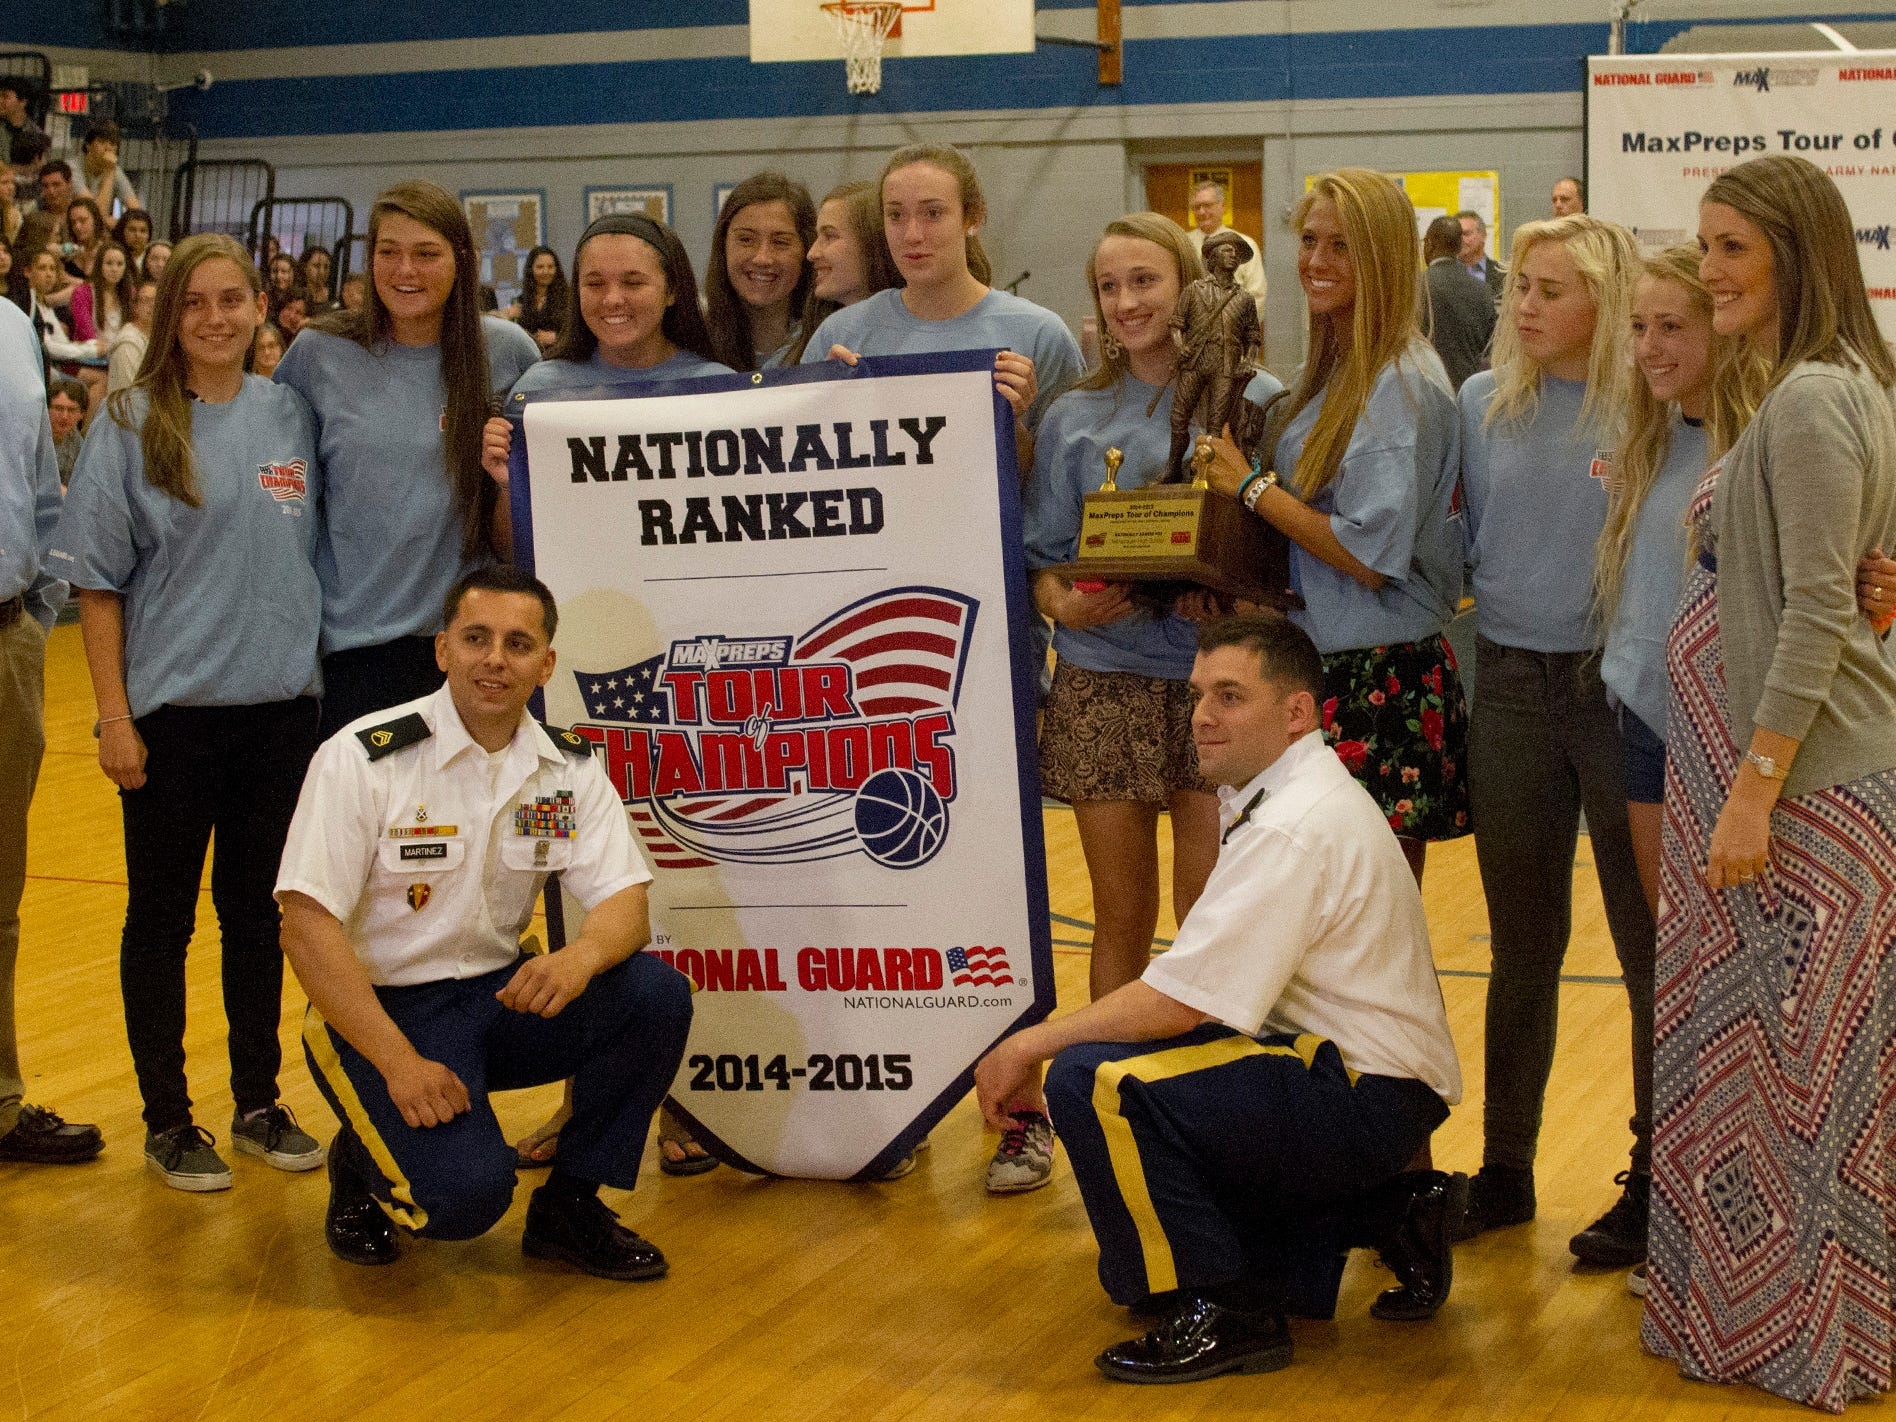 NJSIAA Tournament of Champion winners Manasquan High School Girls Basketball poses with trophy and Army National Guard Staff Sargeants Angelo Martinez and Anthony Larobina. Photo taken at Manasquan High School in Manasquan NJ on May 15, 2015.